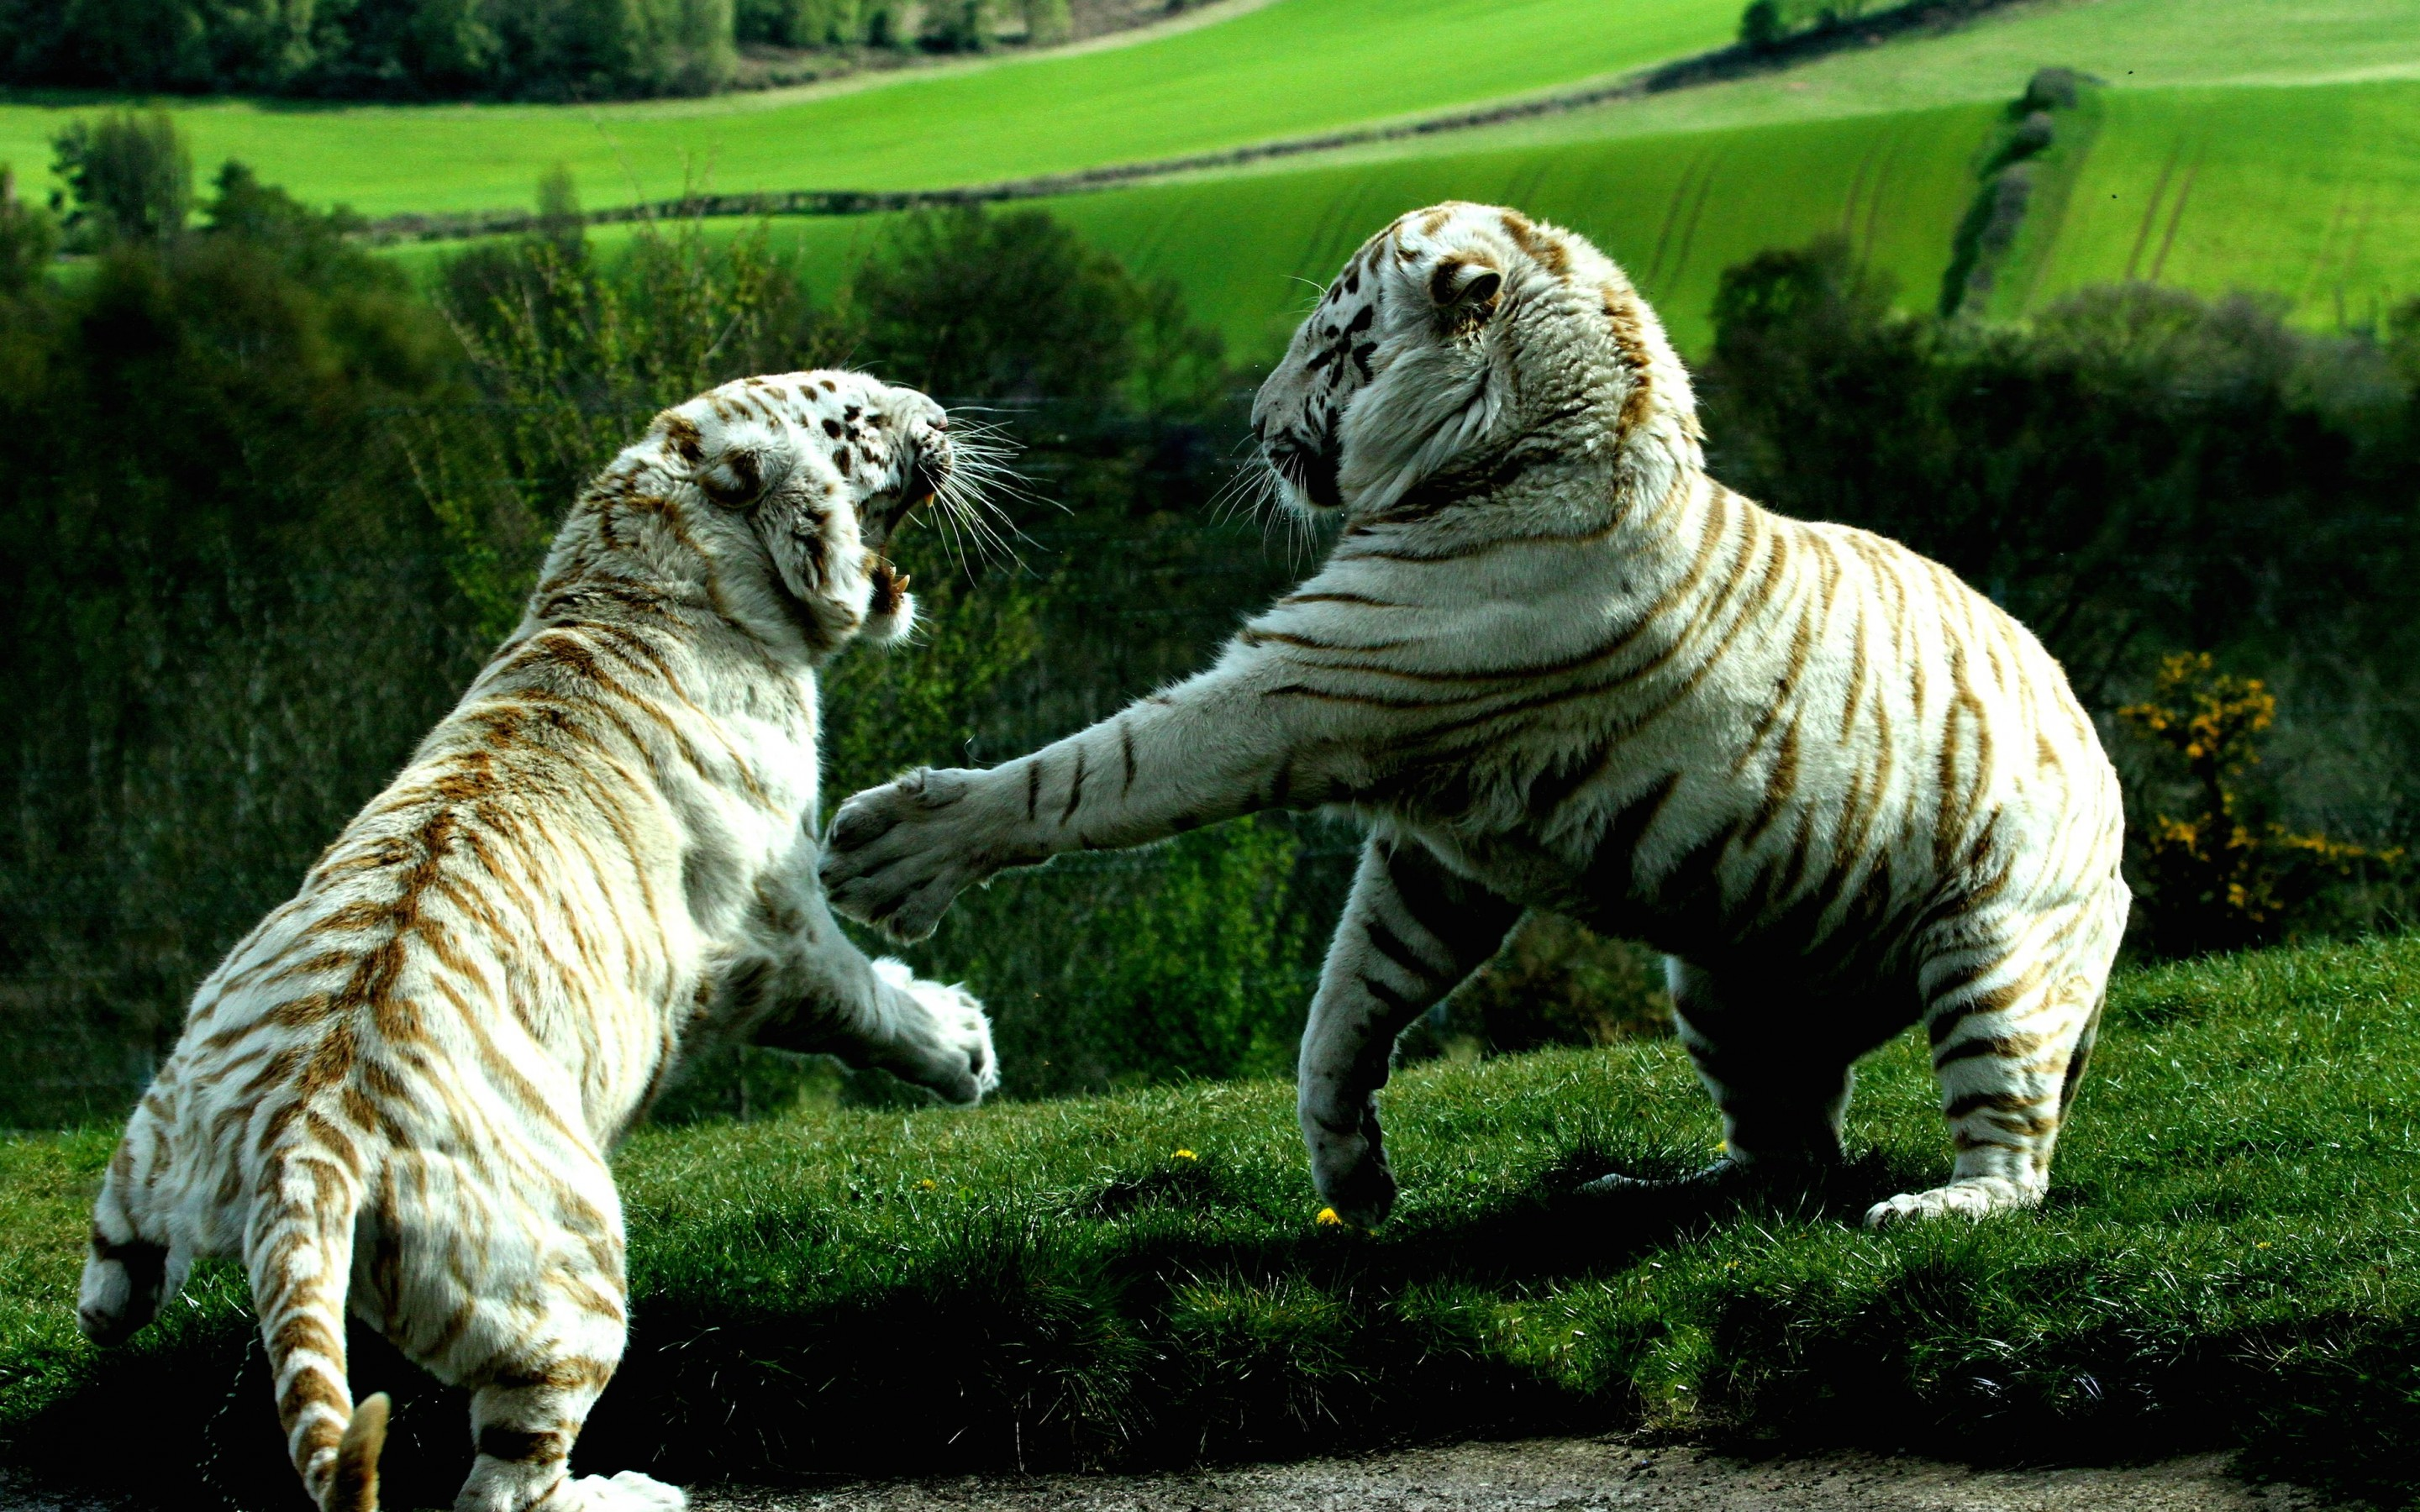 White Tigers Fighting Wallpaper for Desktop 2880x1800